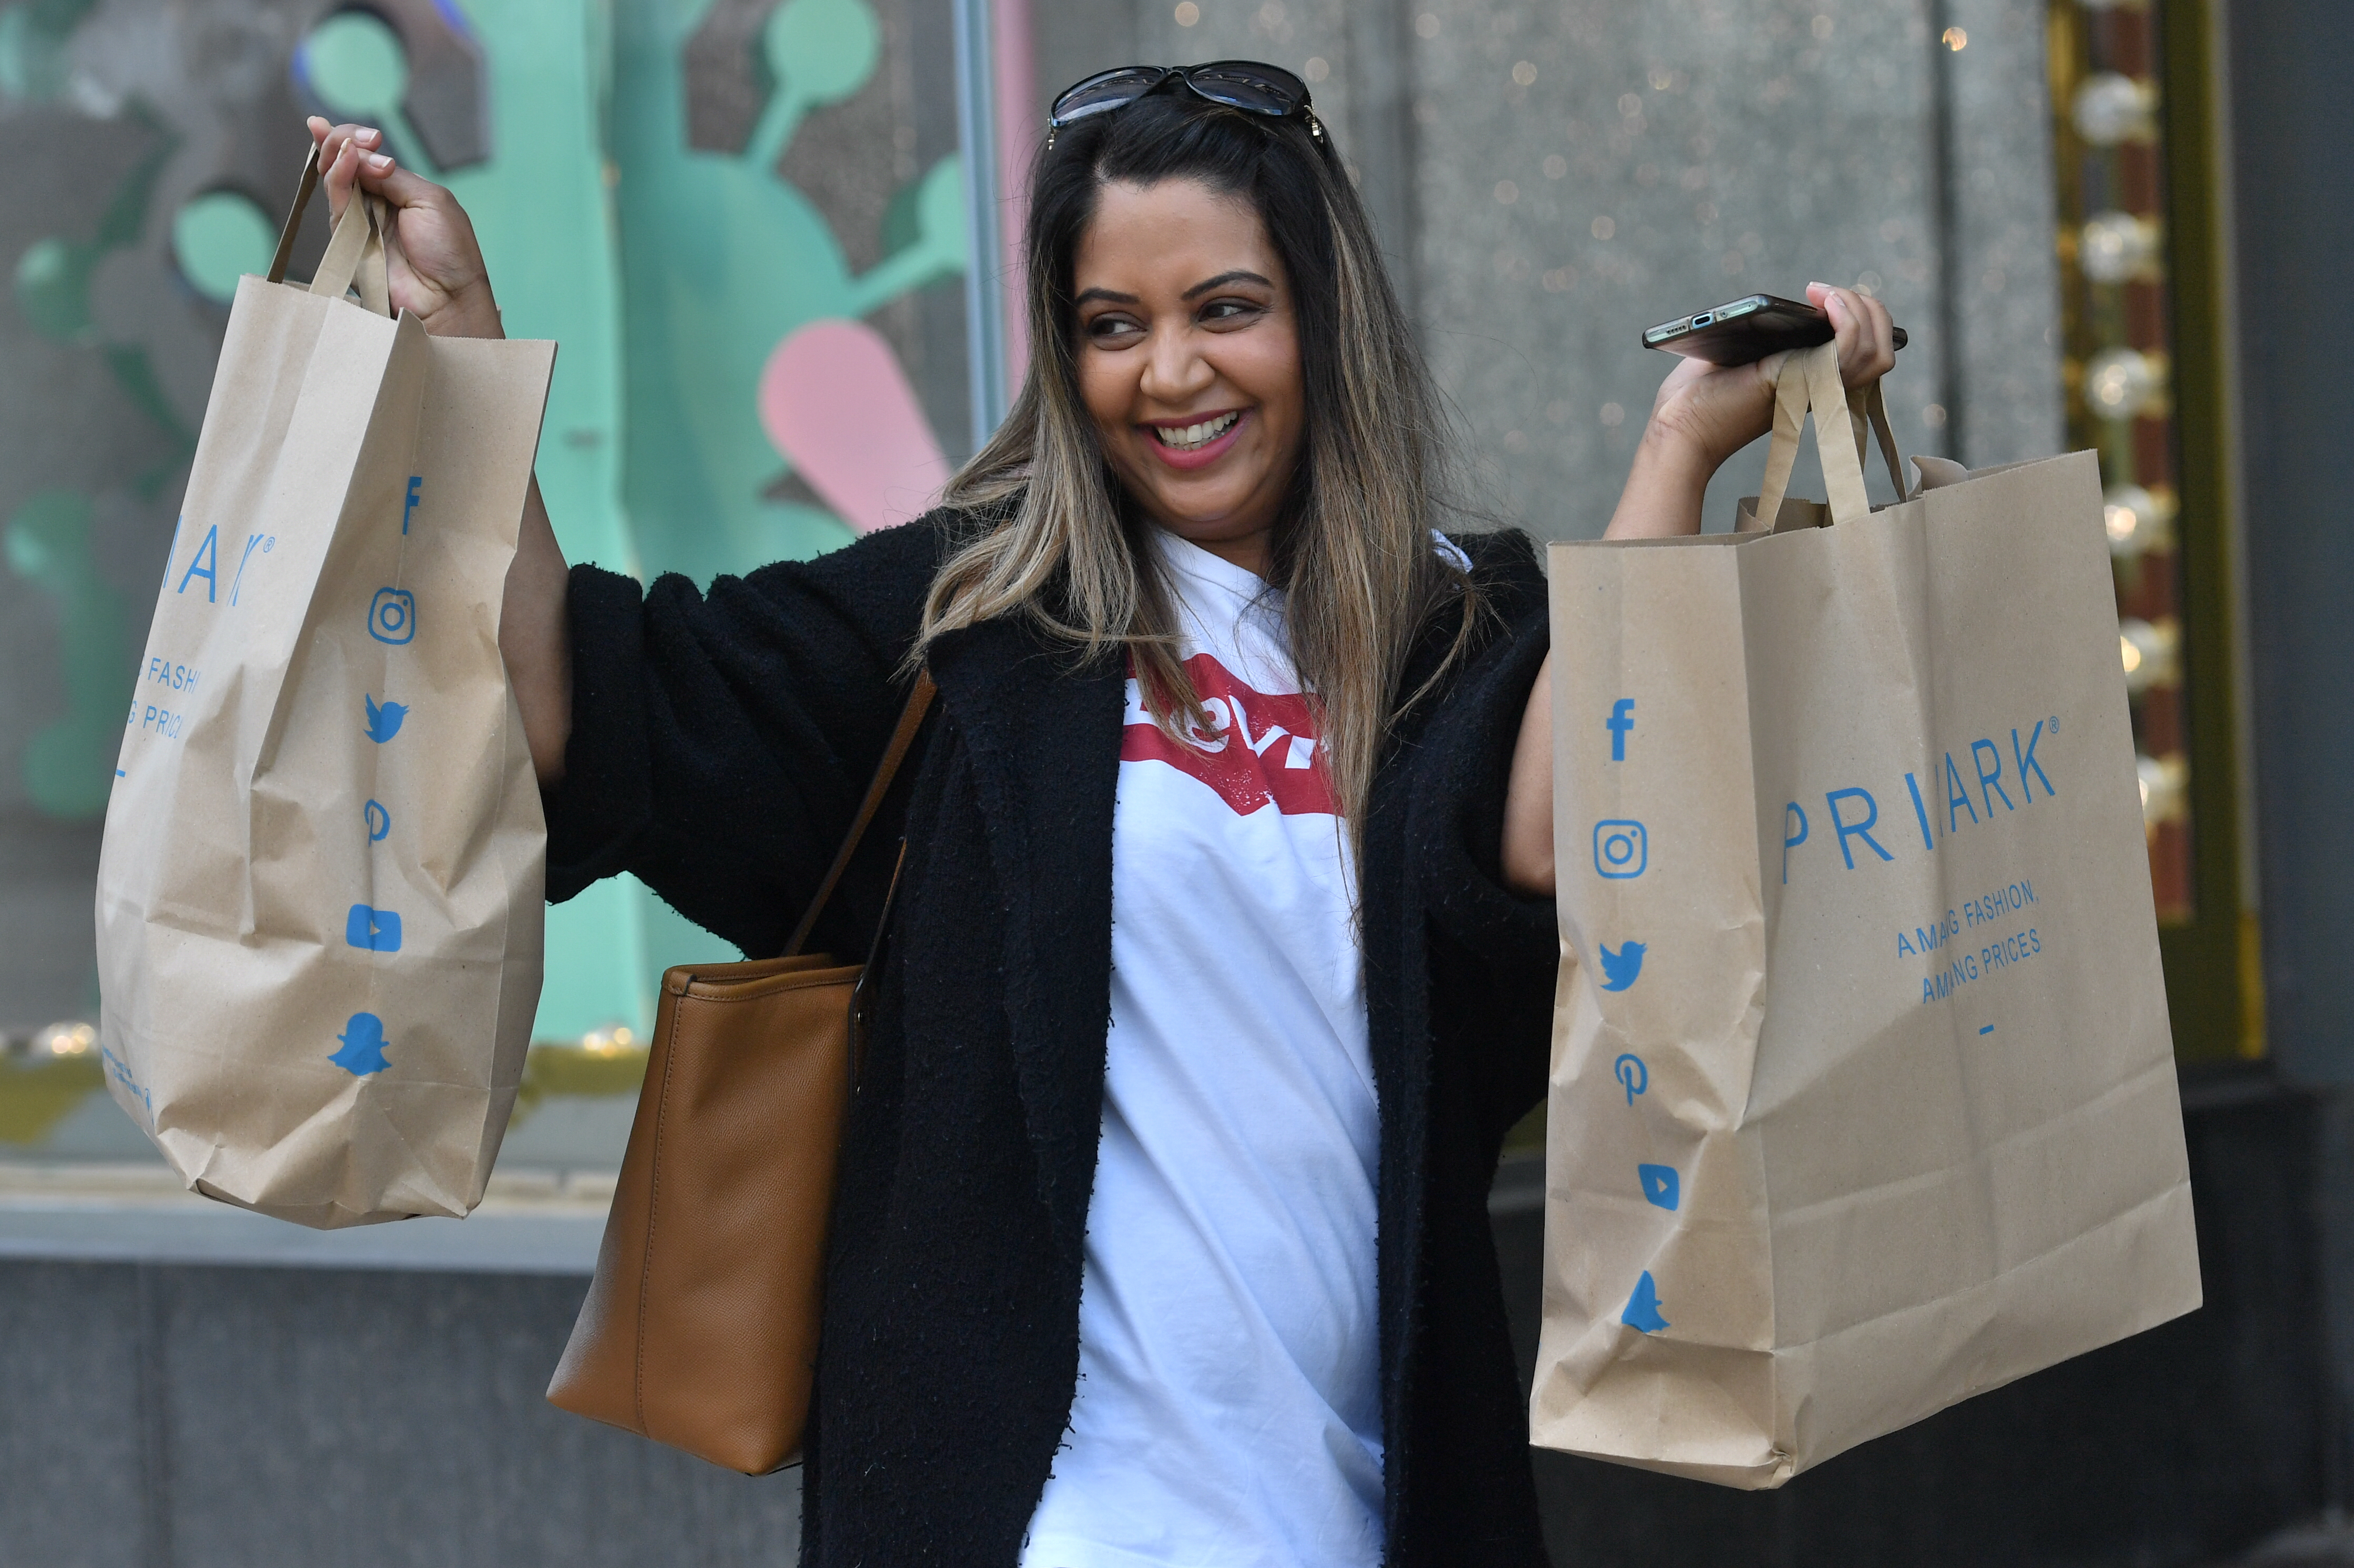 A customer carrying bags of shopping leaves Primark in Birmingham as non-essential shops in England open their doors to customers for the first time since coronavirus lockdown restrictions were imposed in March. (Photo by Jacob King/PA Images via Getty Images)